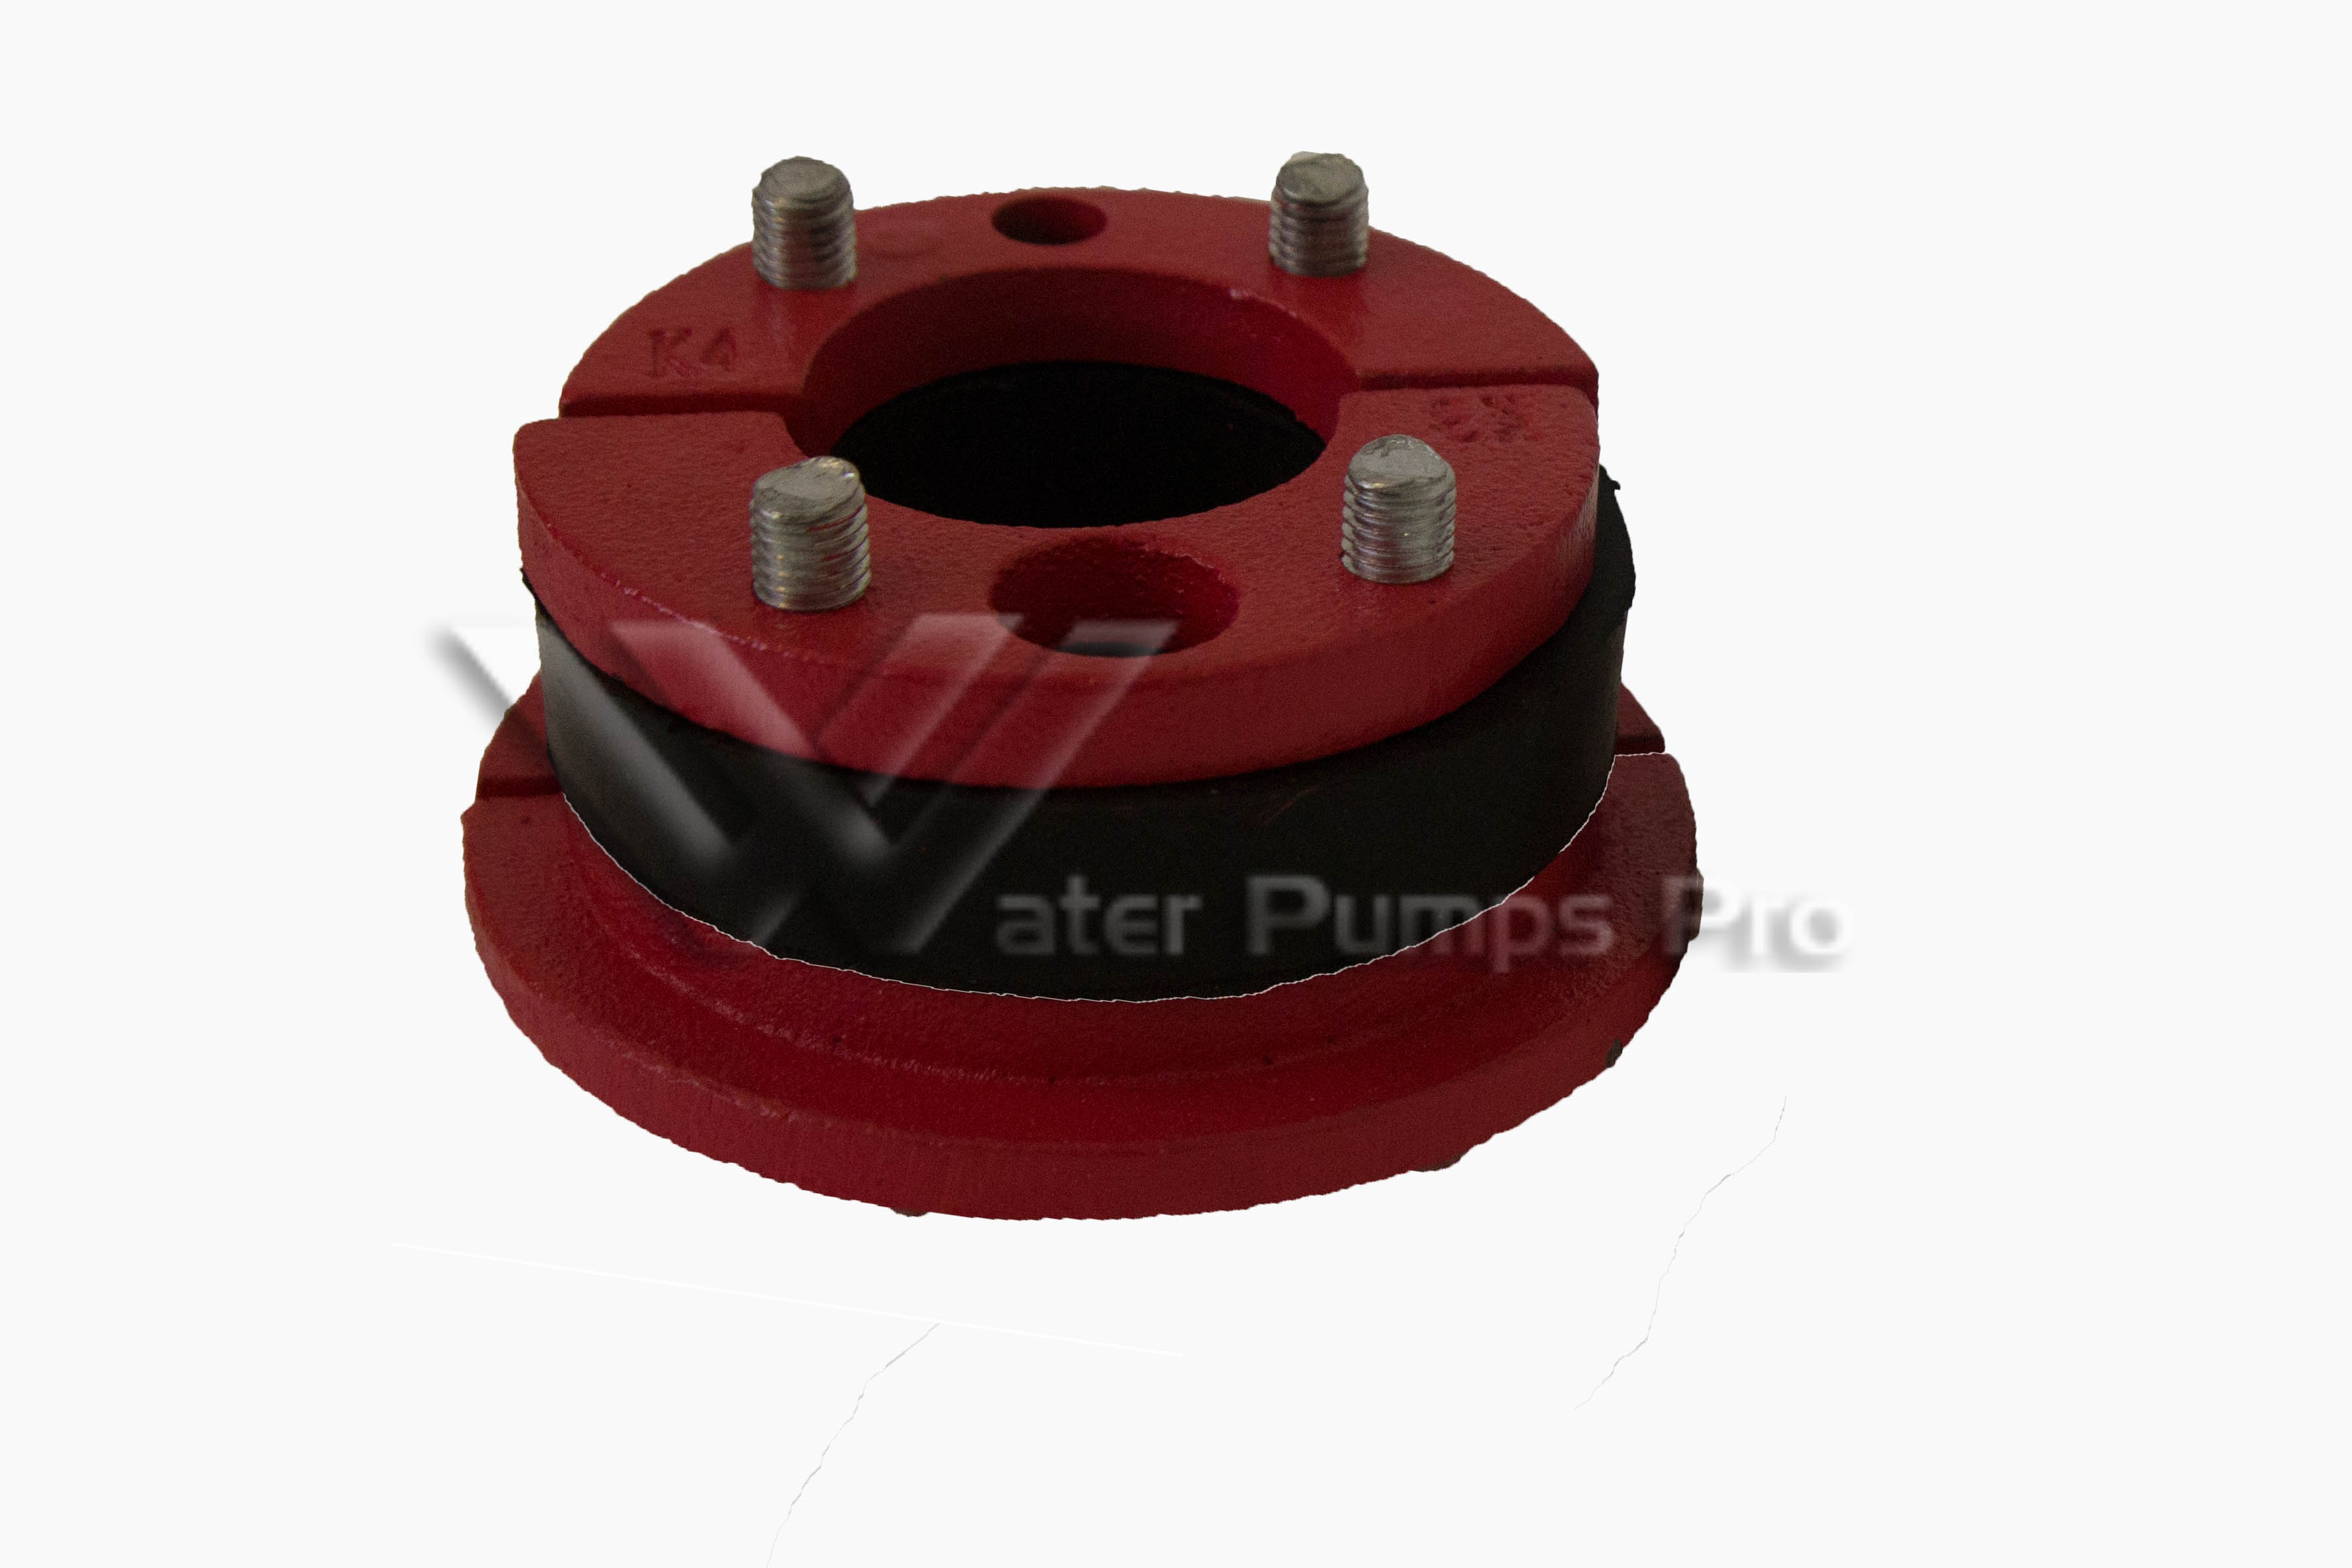 Merrill WS400150 Cast Iron Well Seal